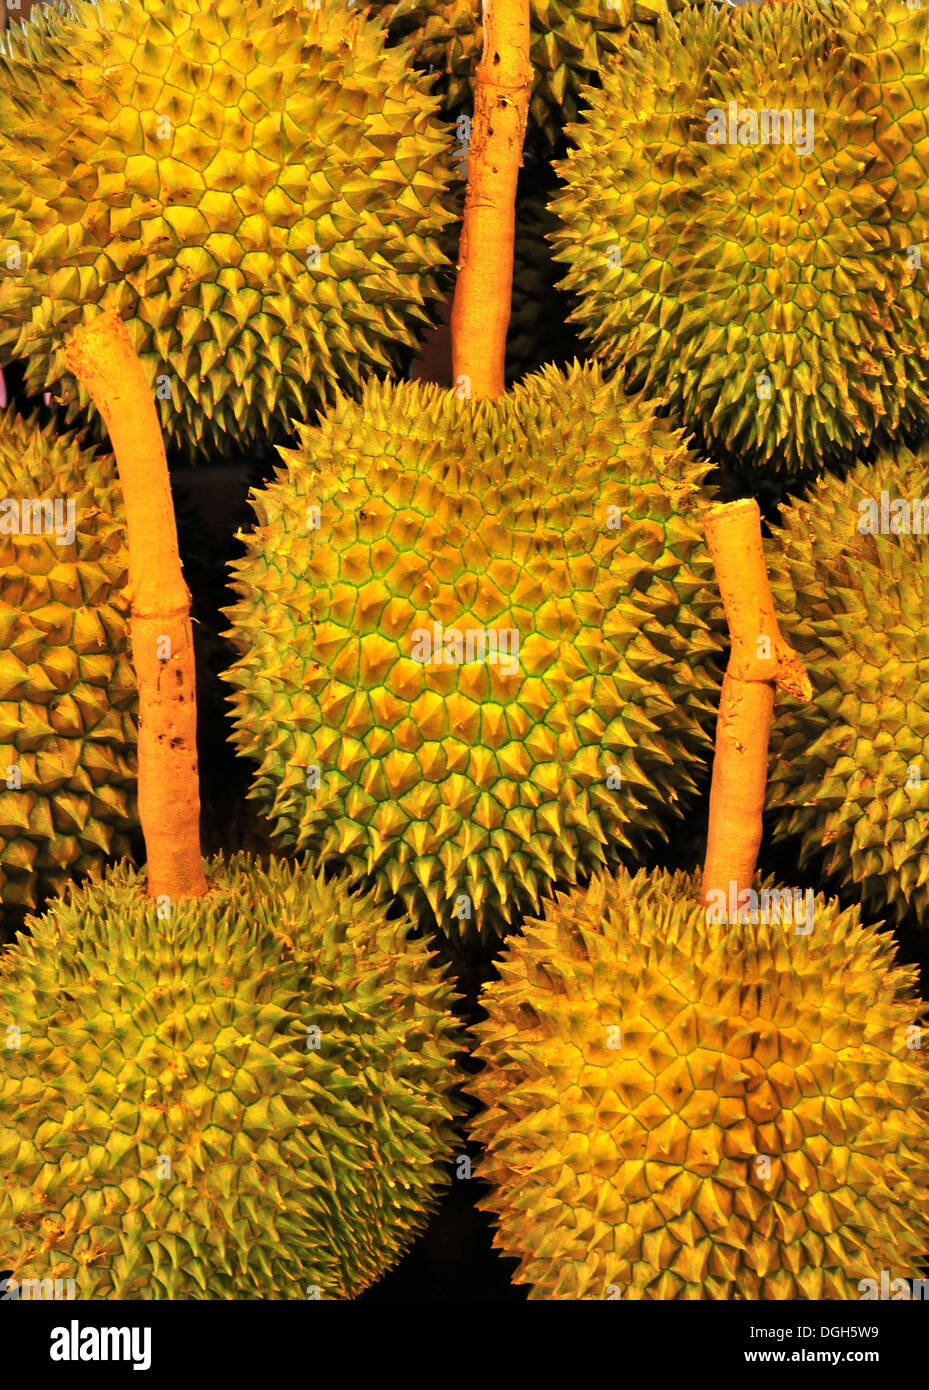 Tropical fruit - Expensive Thai Durian Stock Photo